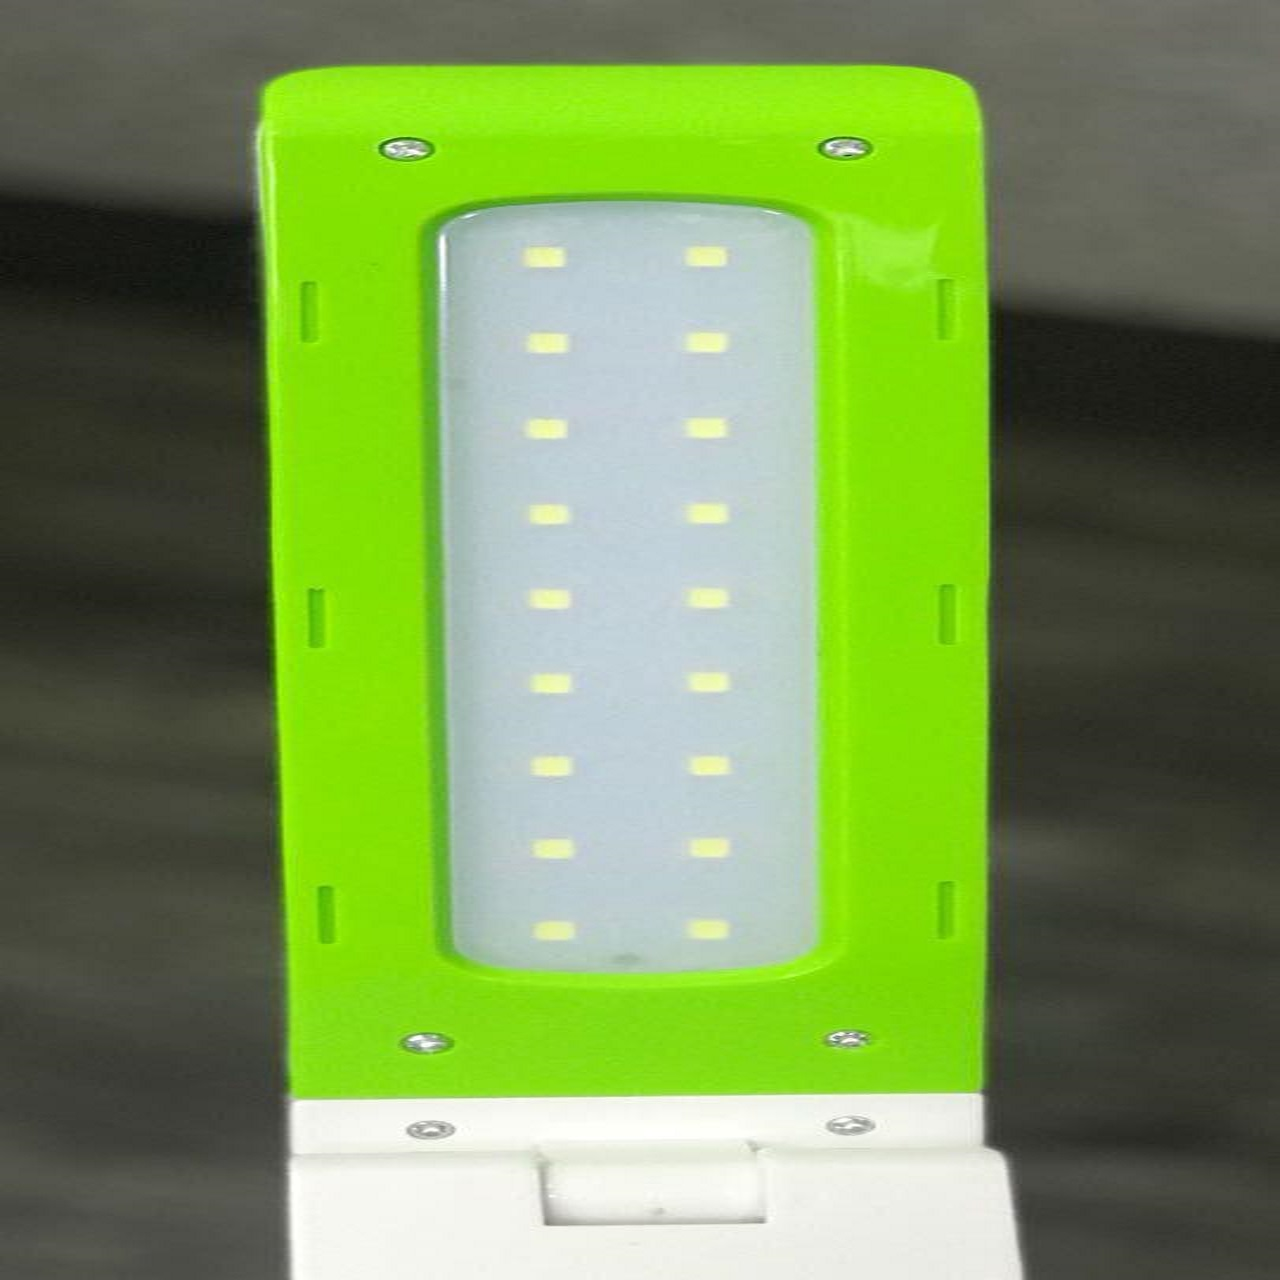 Led Smd Lamp Onoff Switch With Intelligent Yitengyt 2019tFoldable Pressure 18 Sensitive Desk OPkZiwTXu